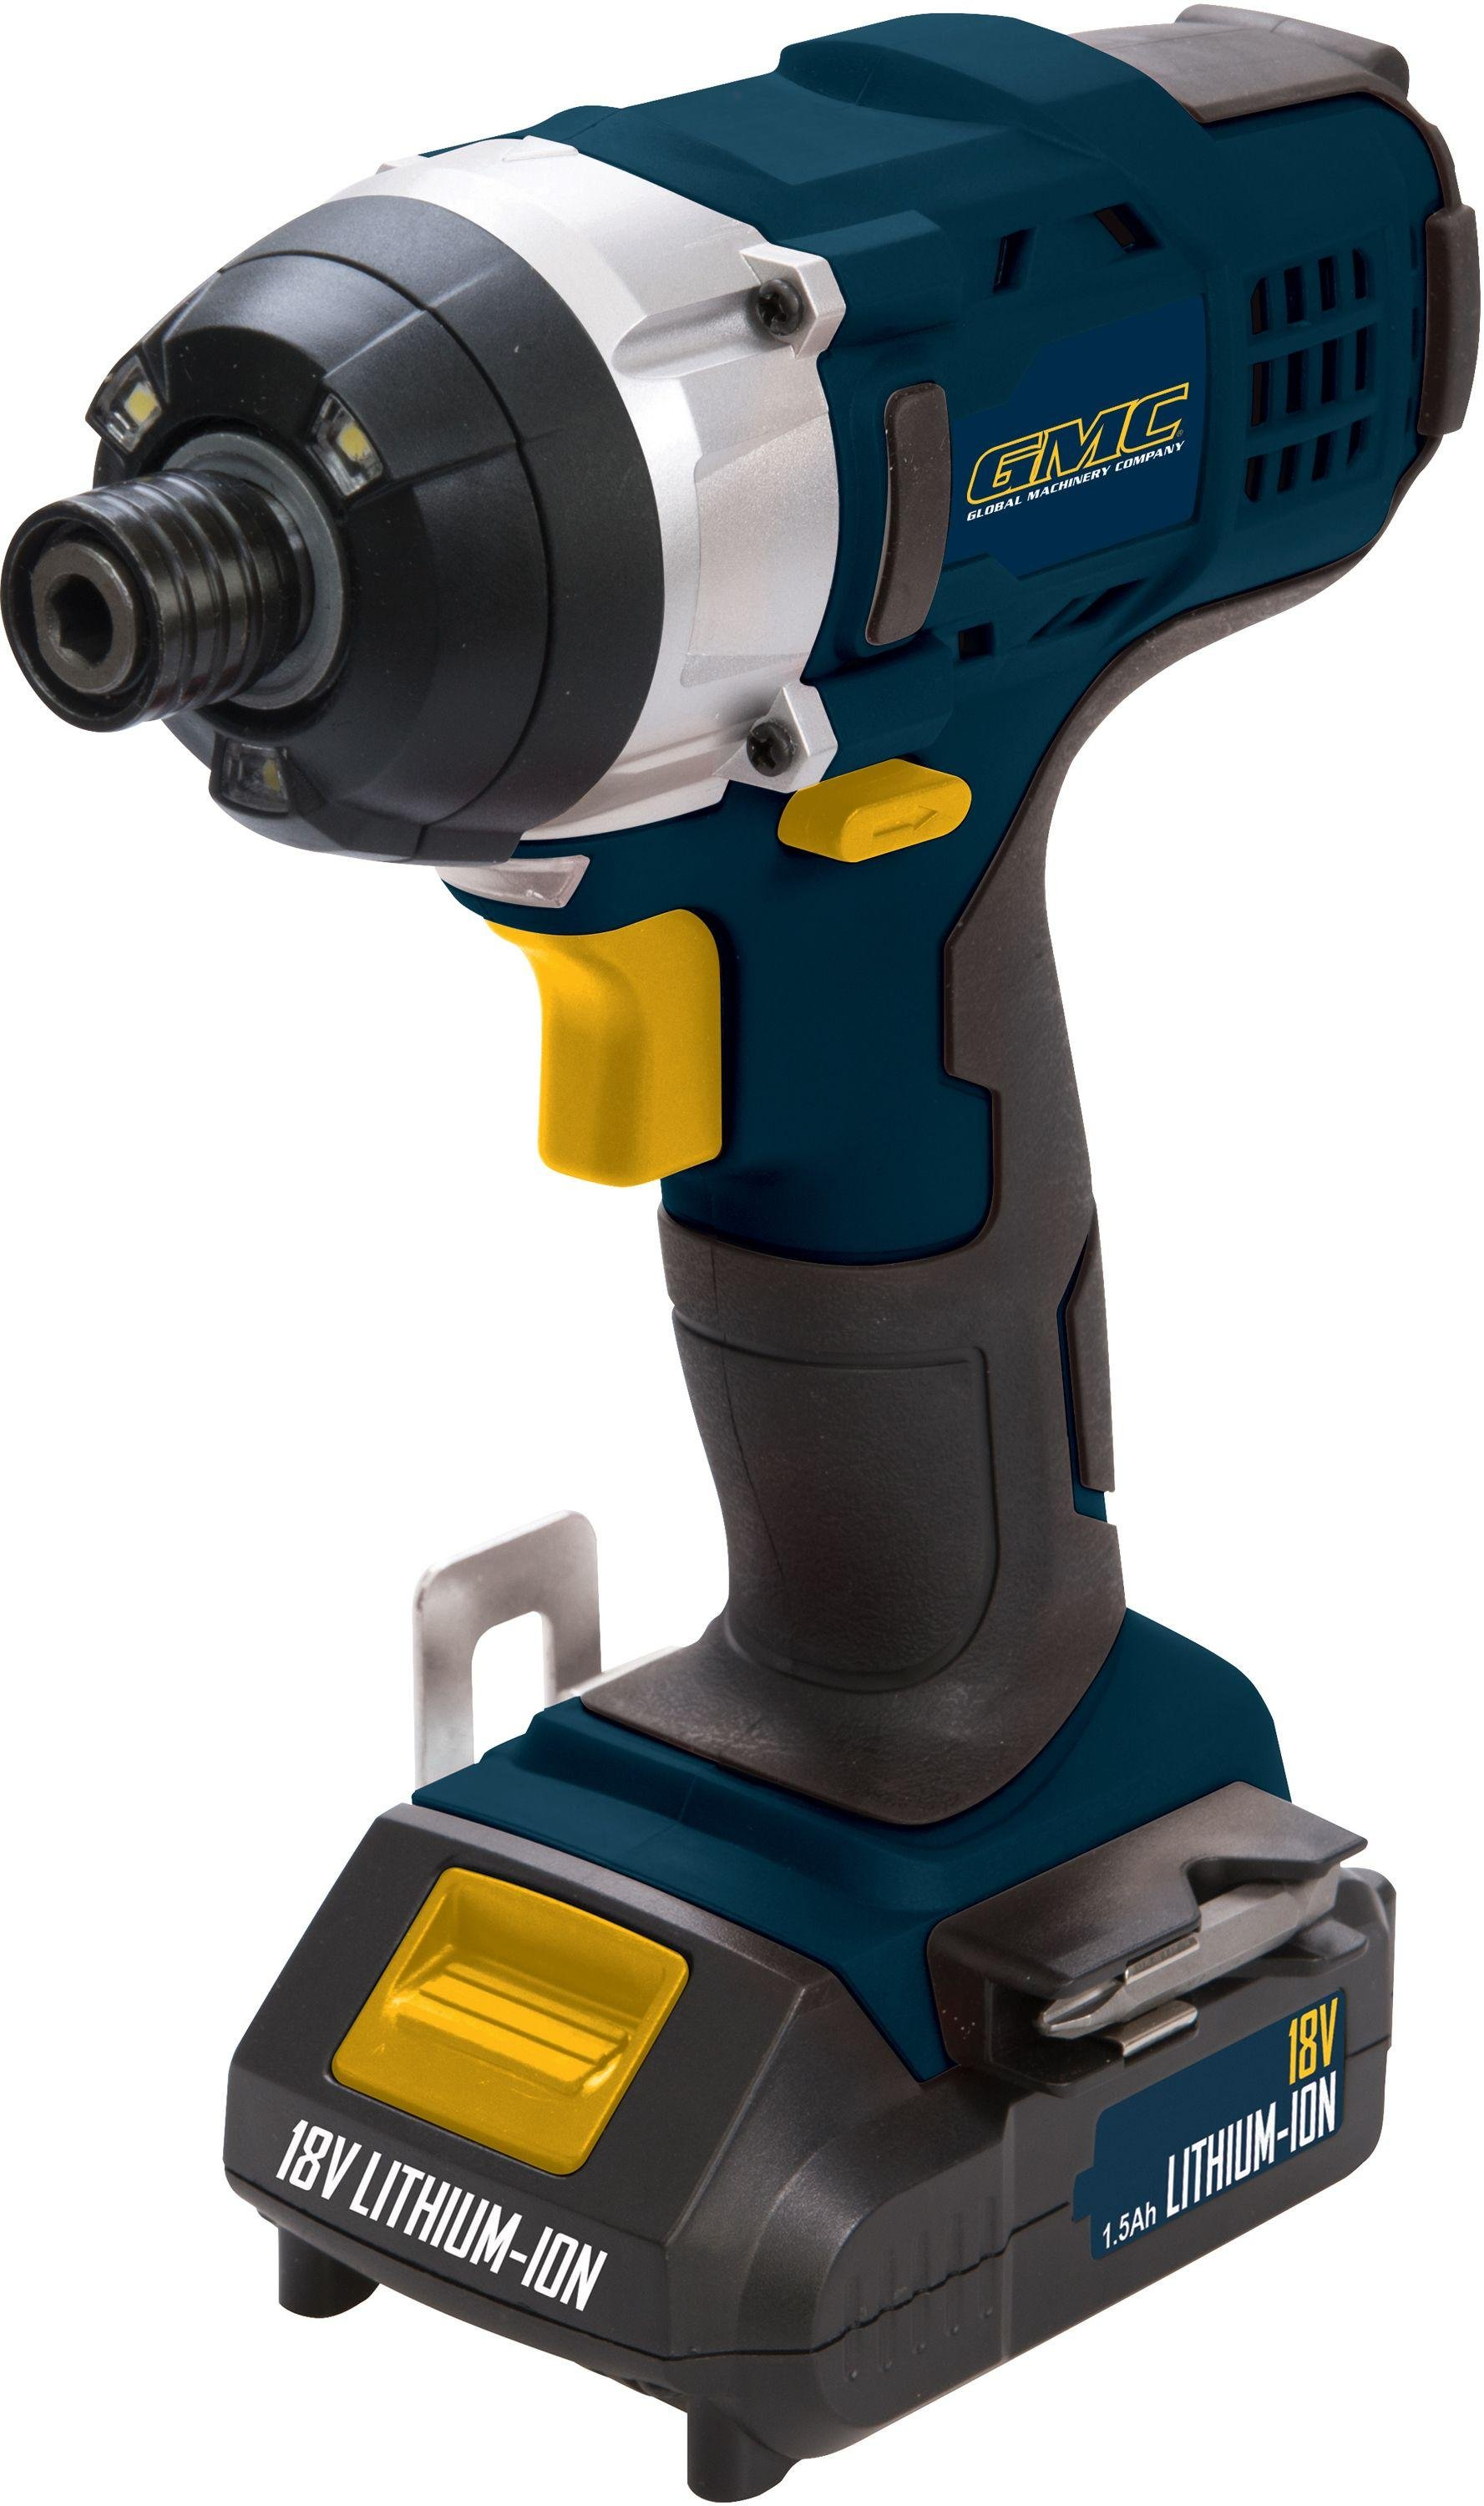 18v Impact Driver Deals Uk American Eagle Outfitters Online Coupon Stanley Brushless See Our Top 100 Reviews